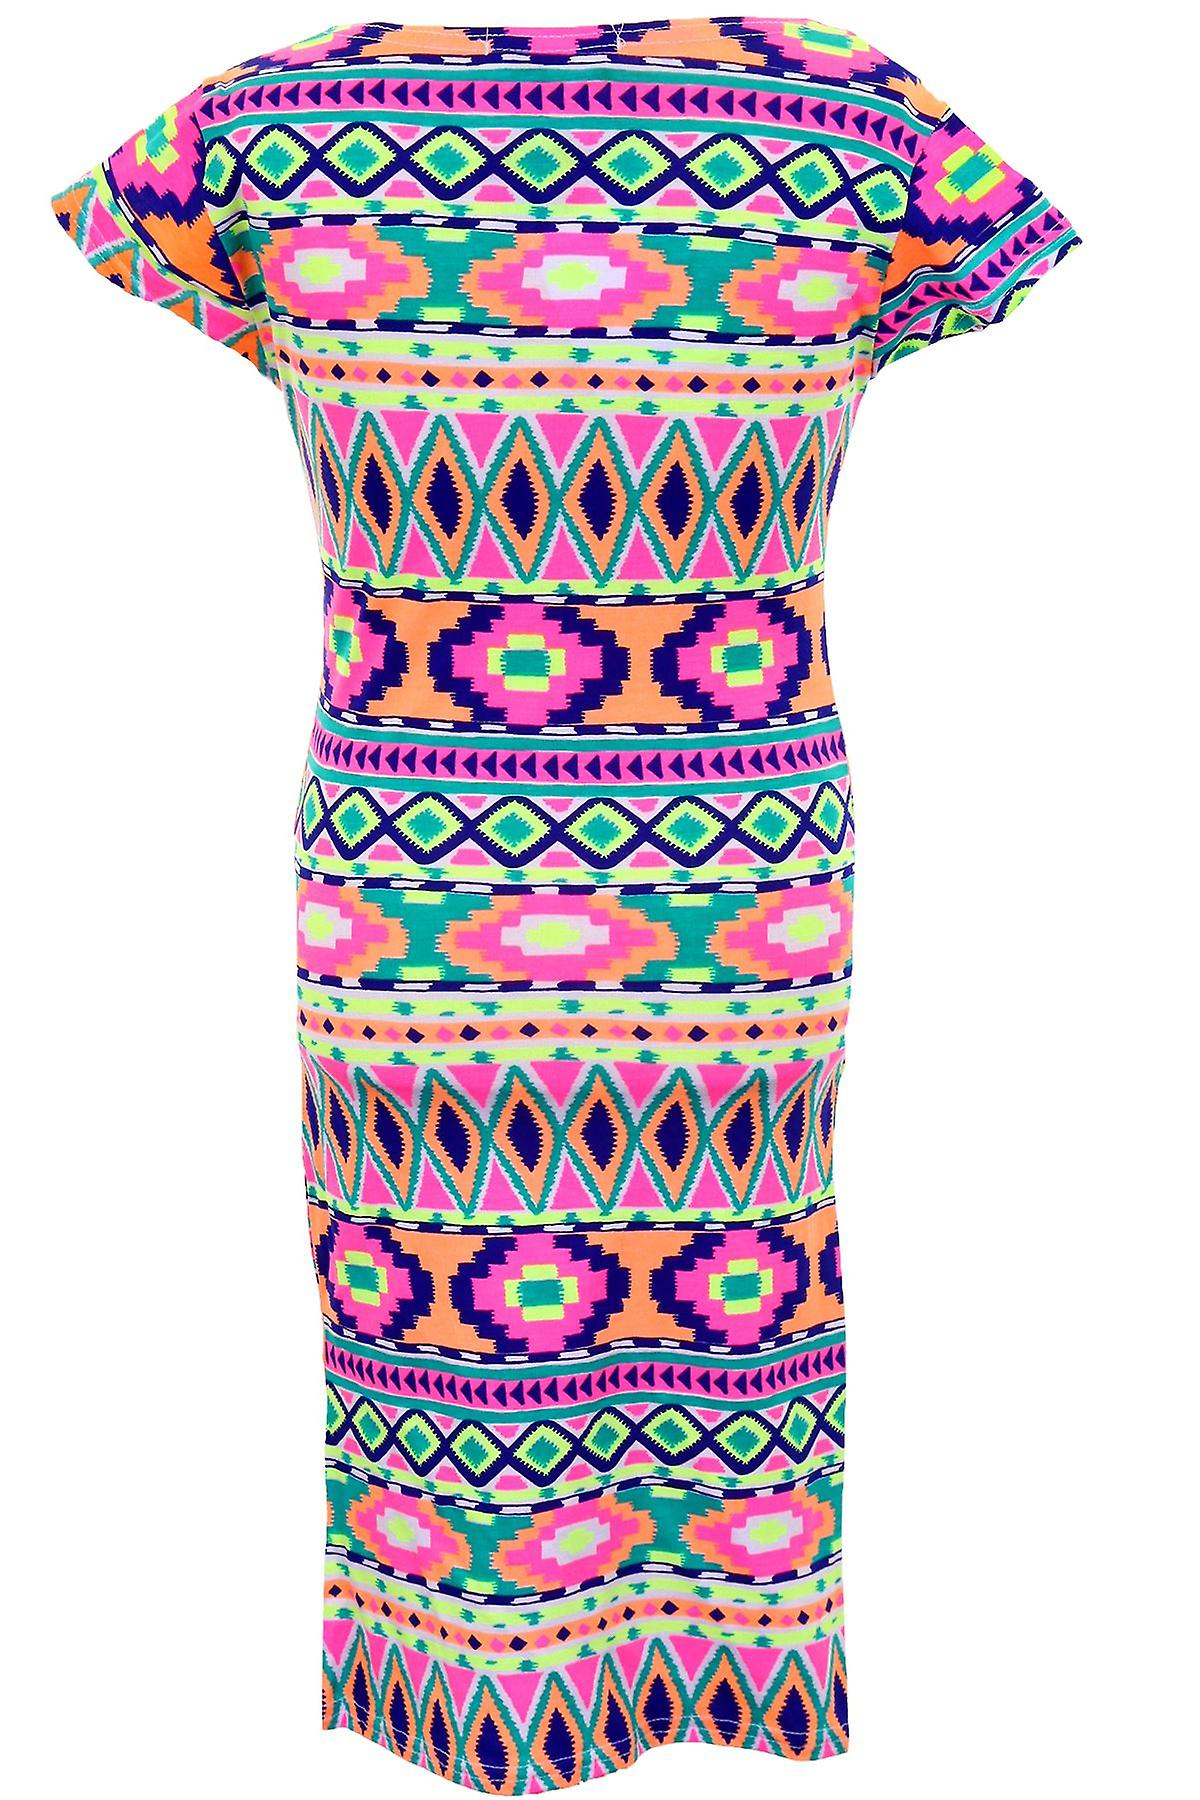 Children's Cap Sleeve Luminous Neon Comic Floral Funky Print Girls Fitted Dress